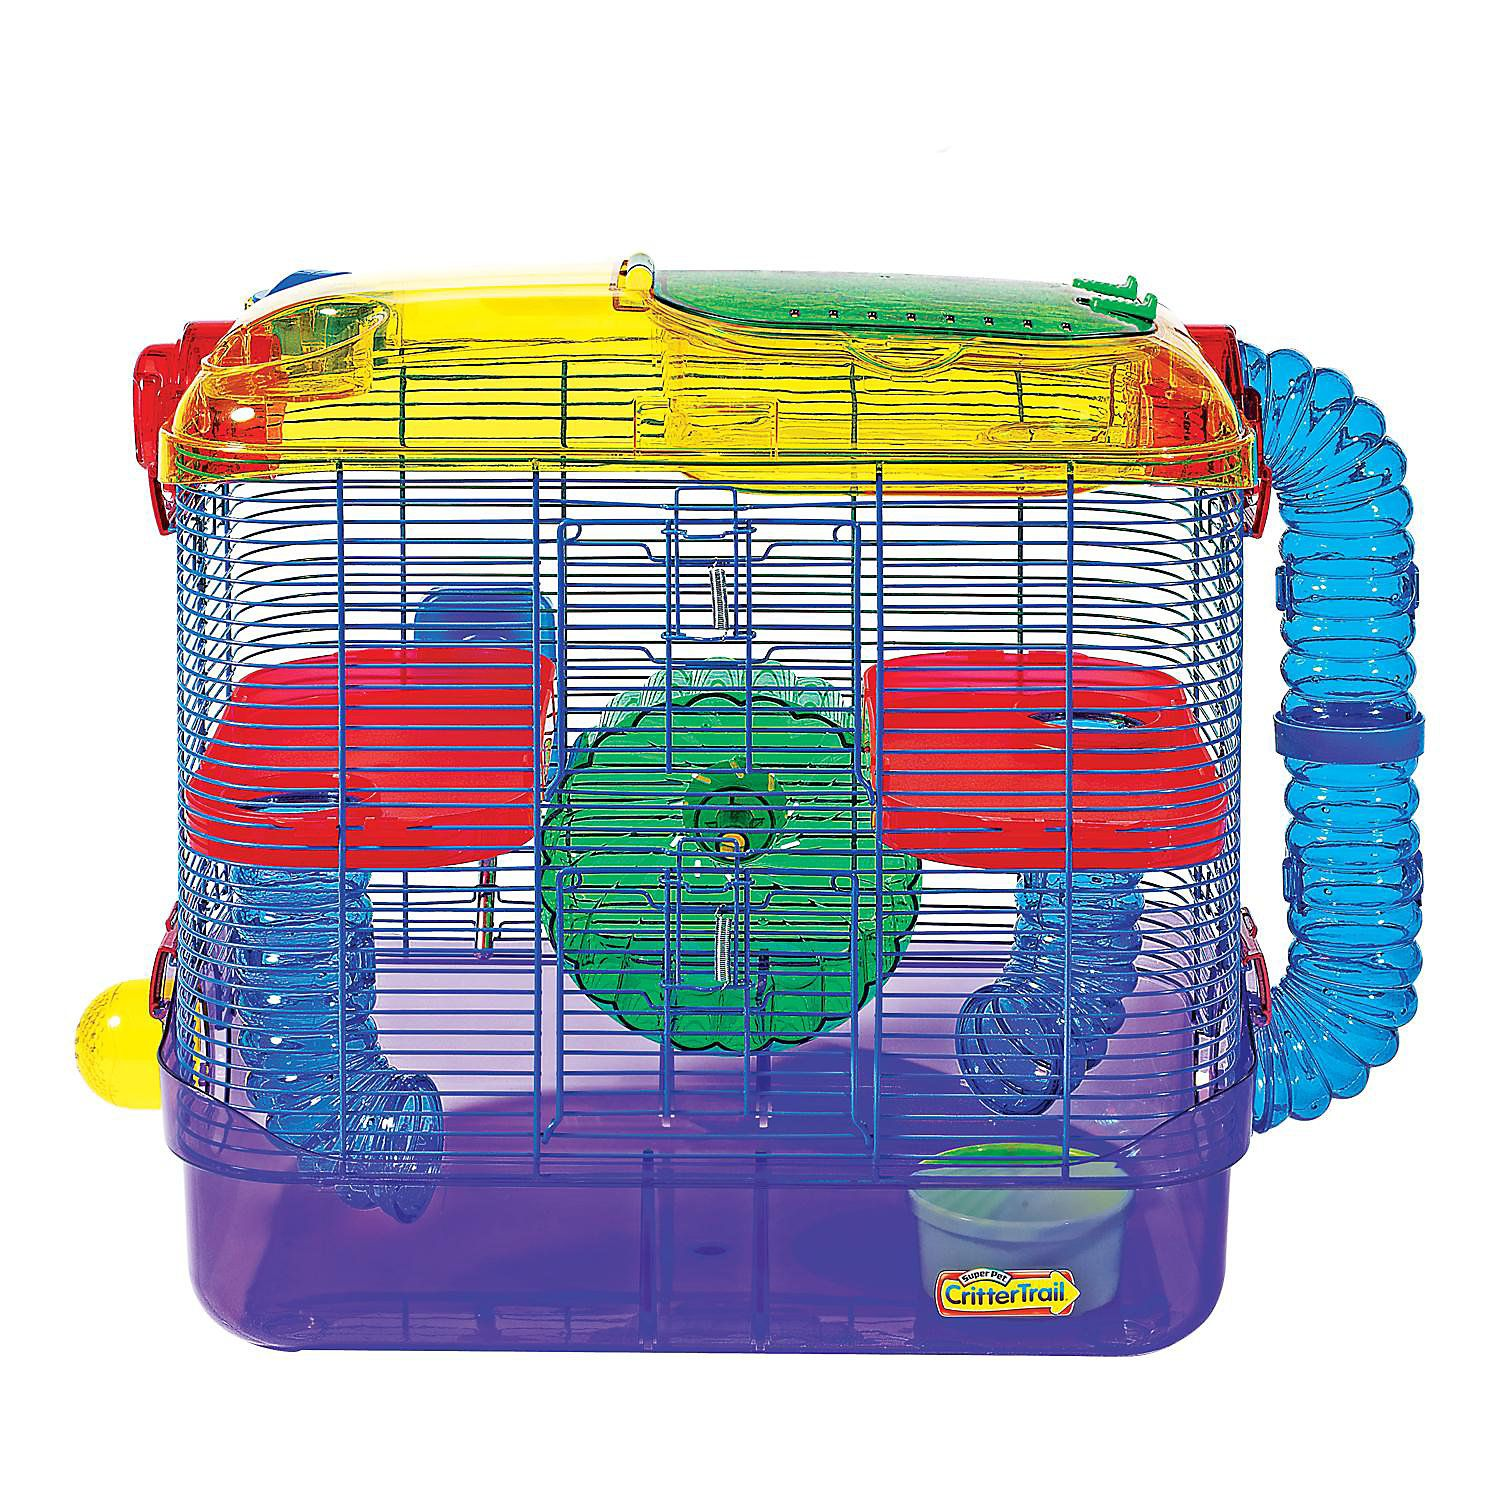 Kaytee Crittertrail Two Petco Hamster Cages Cool Hamster Cages Small Pets